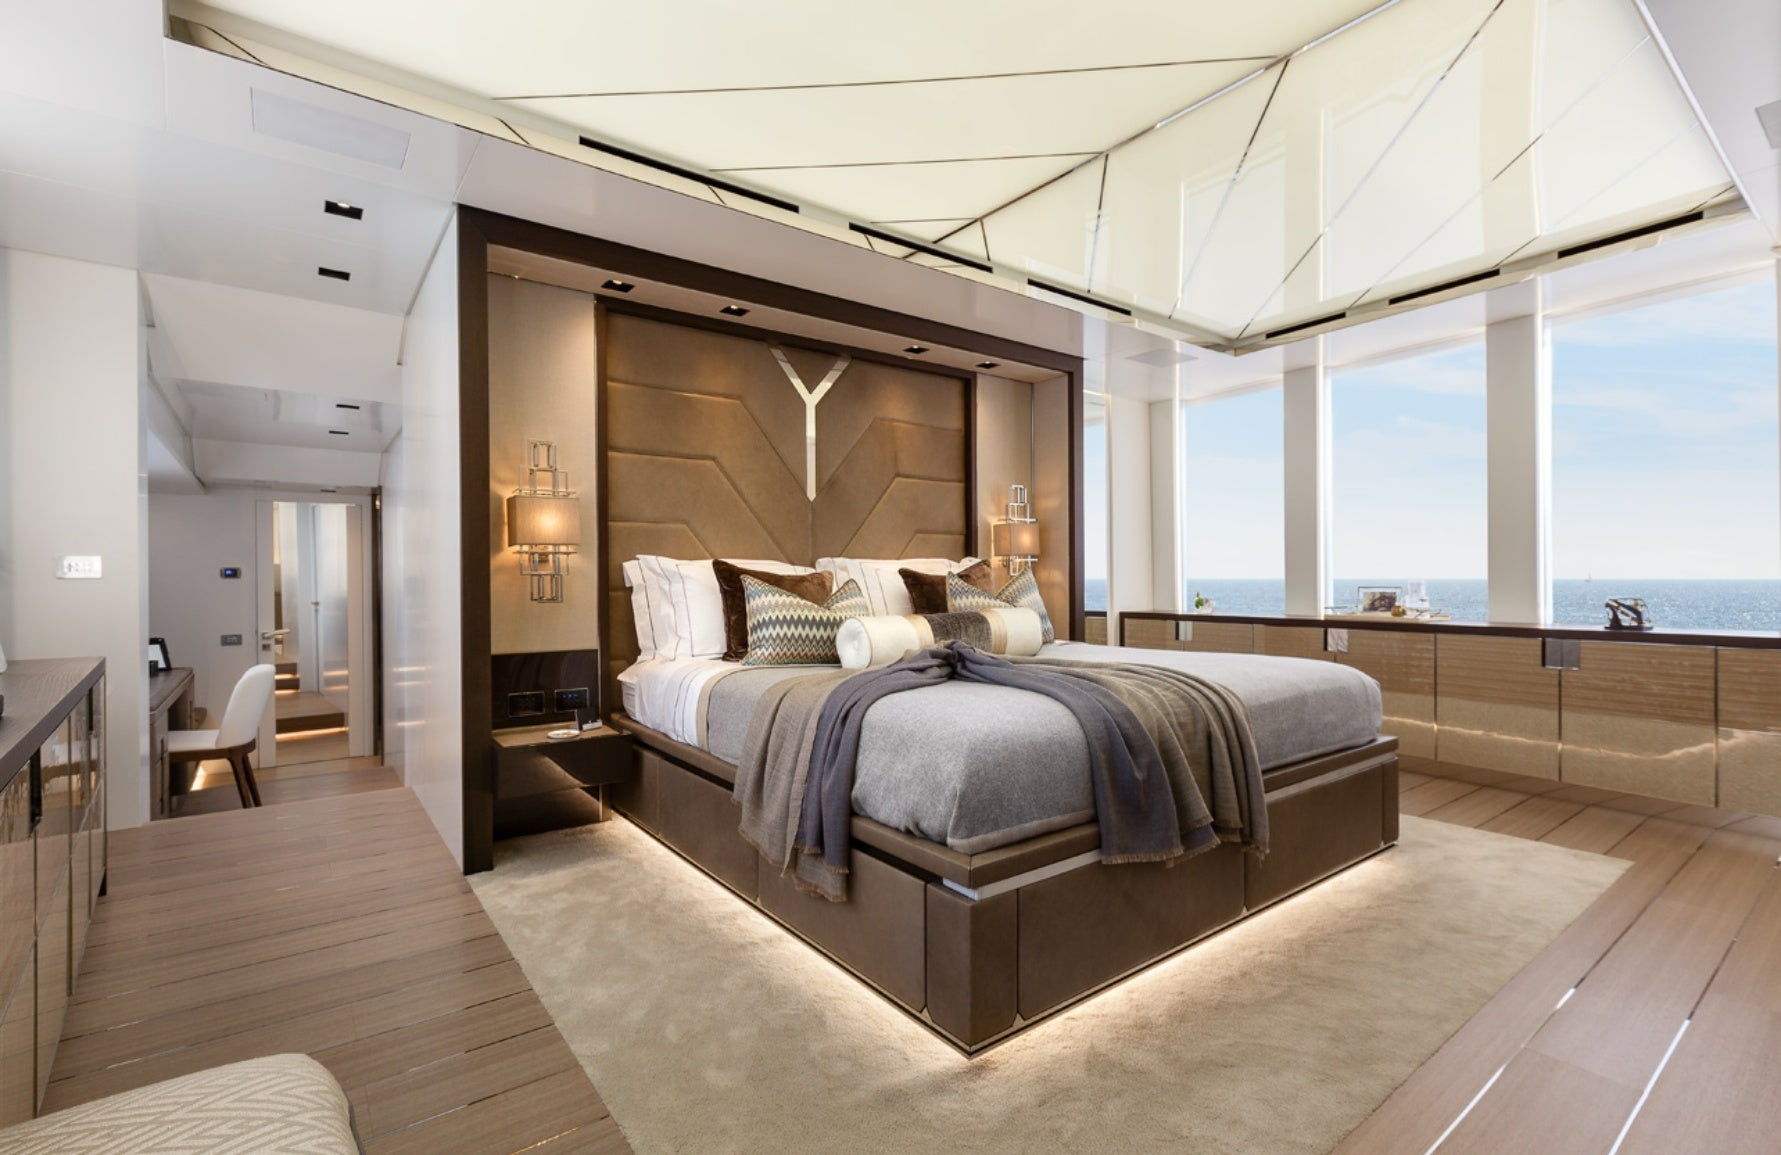 Luxury Superyacht Interior Design Ideas - Bedroom Yacht Interior - LuxDeco.com